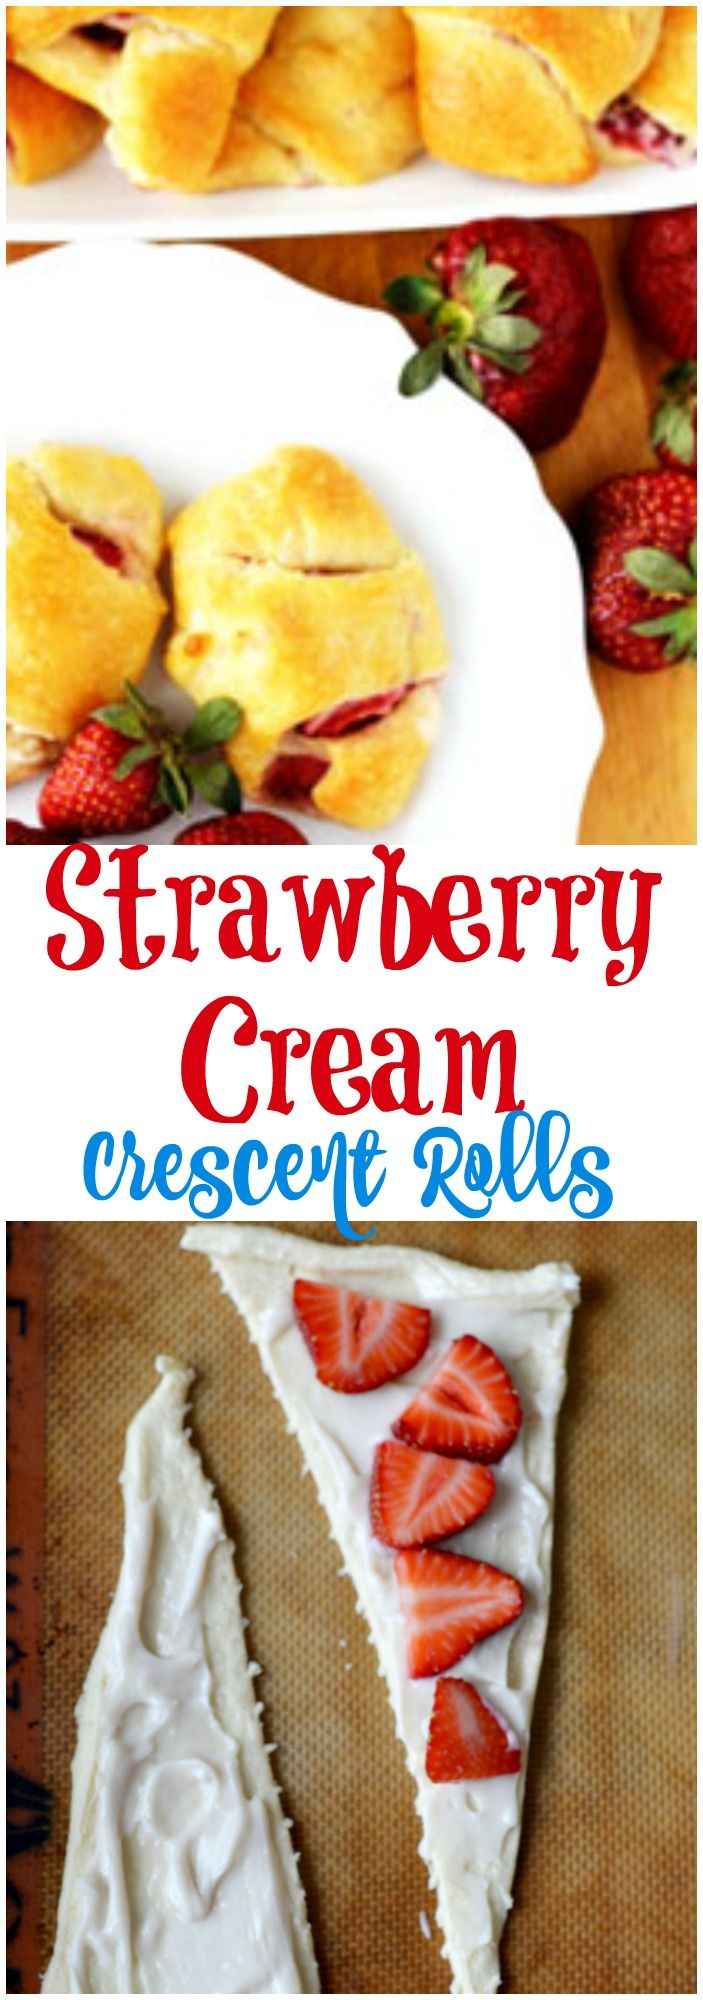 Strawberry Cream Crescent Roll Recipe is an summer snack made with fresh strawberries. This is definitely a kid approved snack that can be made dairy free. And this snack is so quick to make.